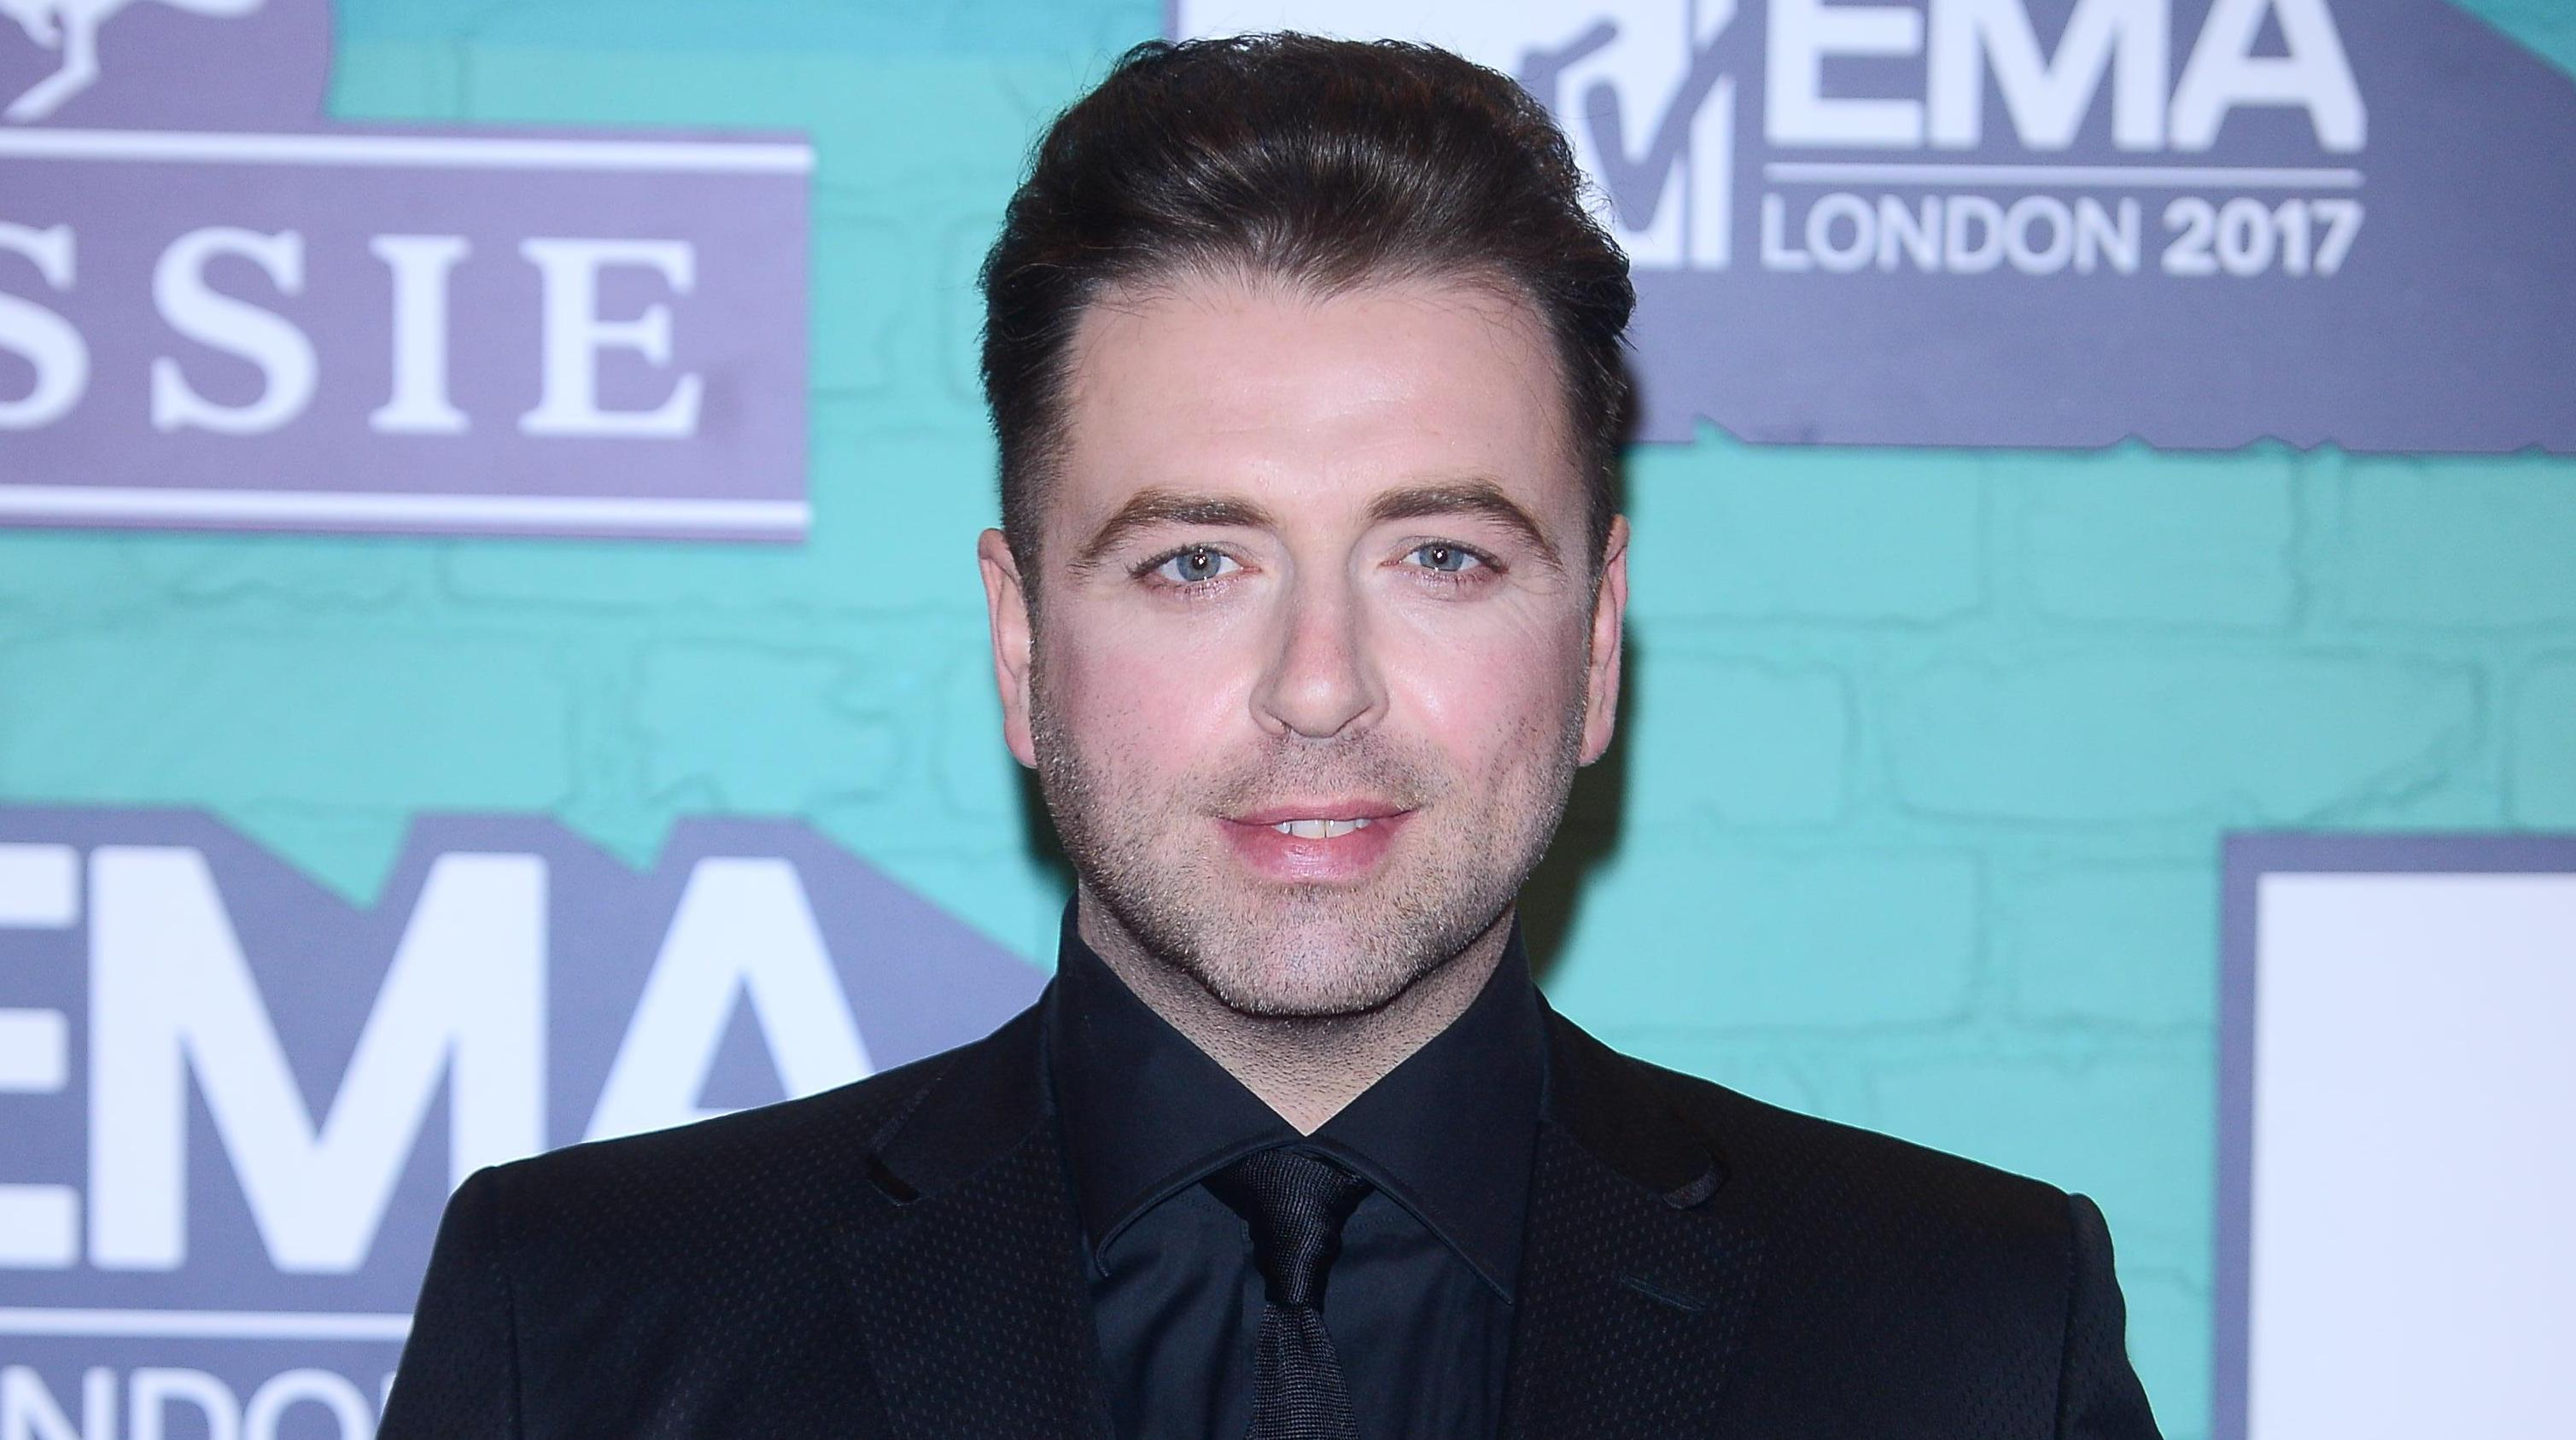 Westlife's Mark Feehily says he wants to be in Strictly's first same-sex dancing couple